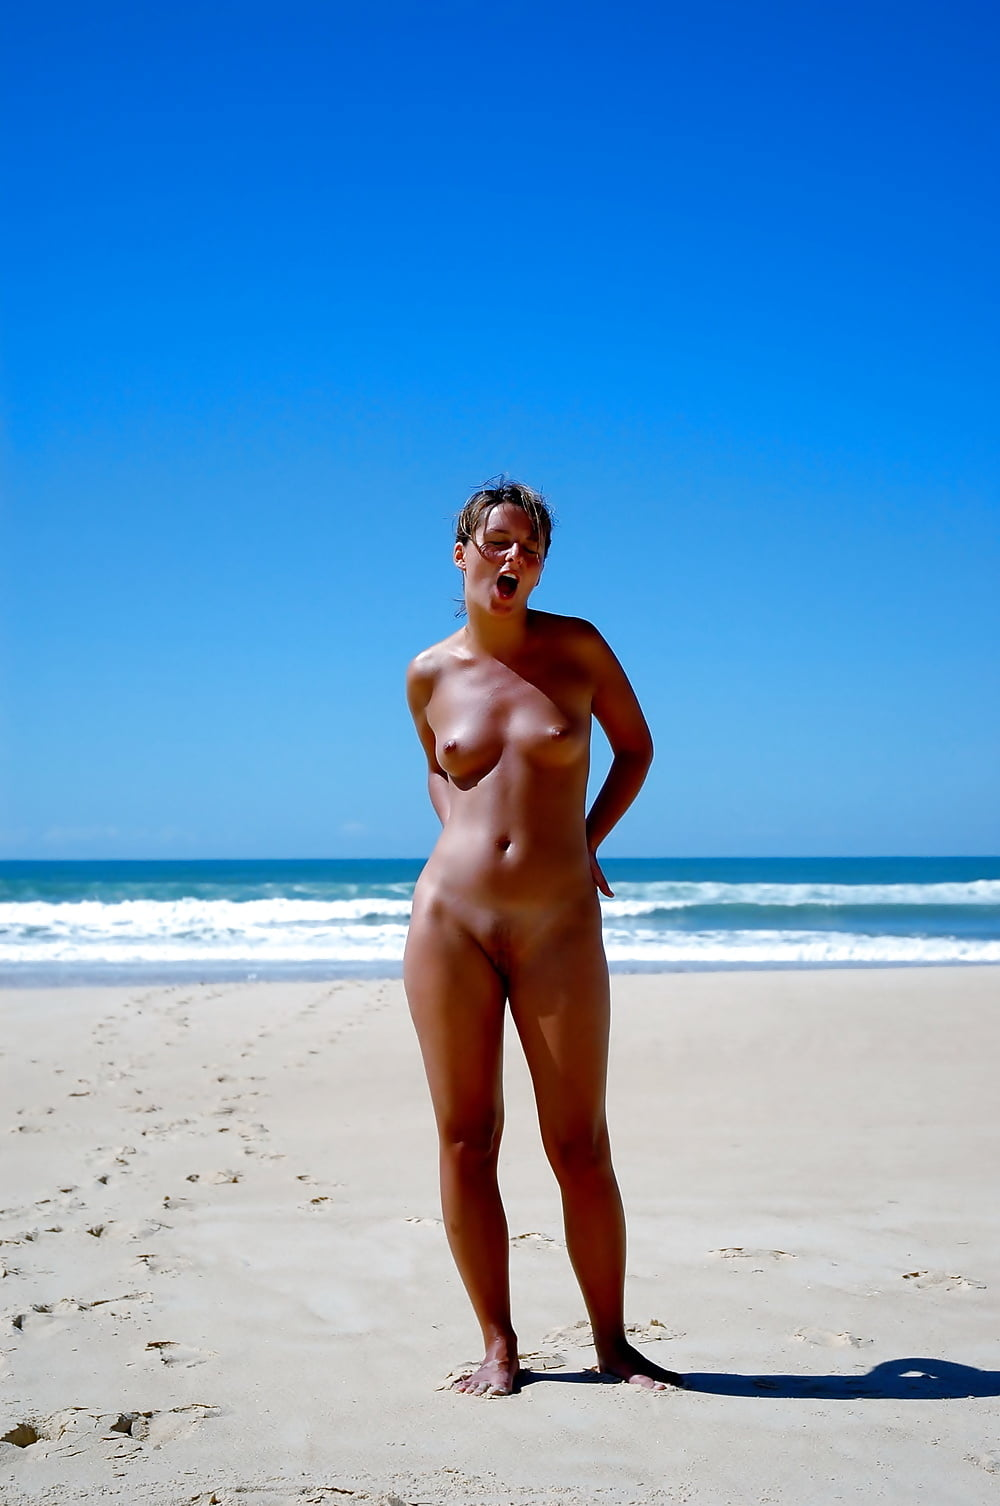 fracture-private-nude-beach-she-shoots